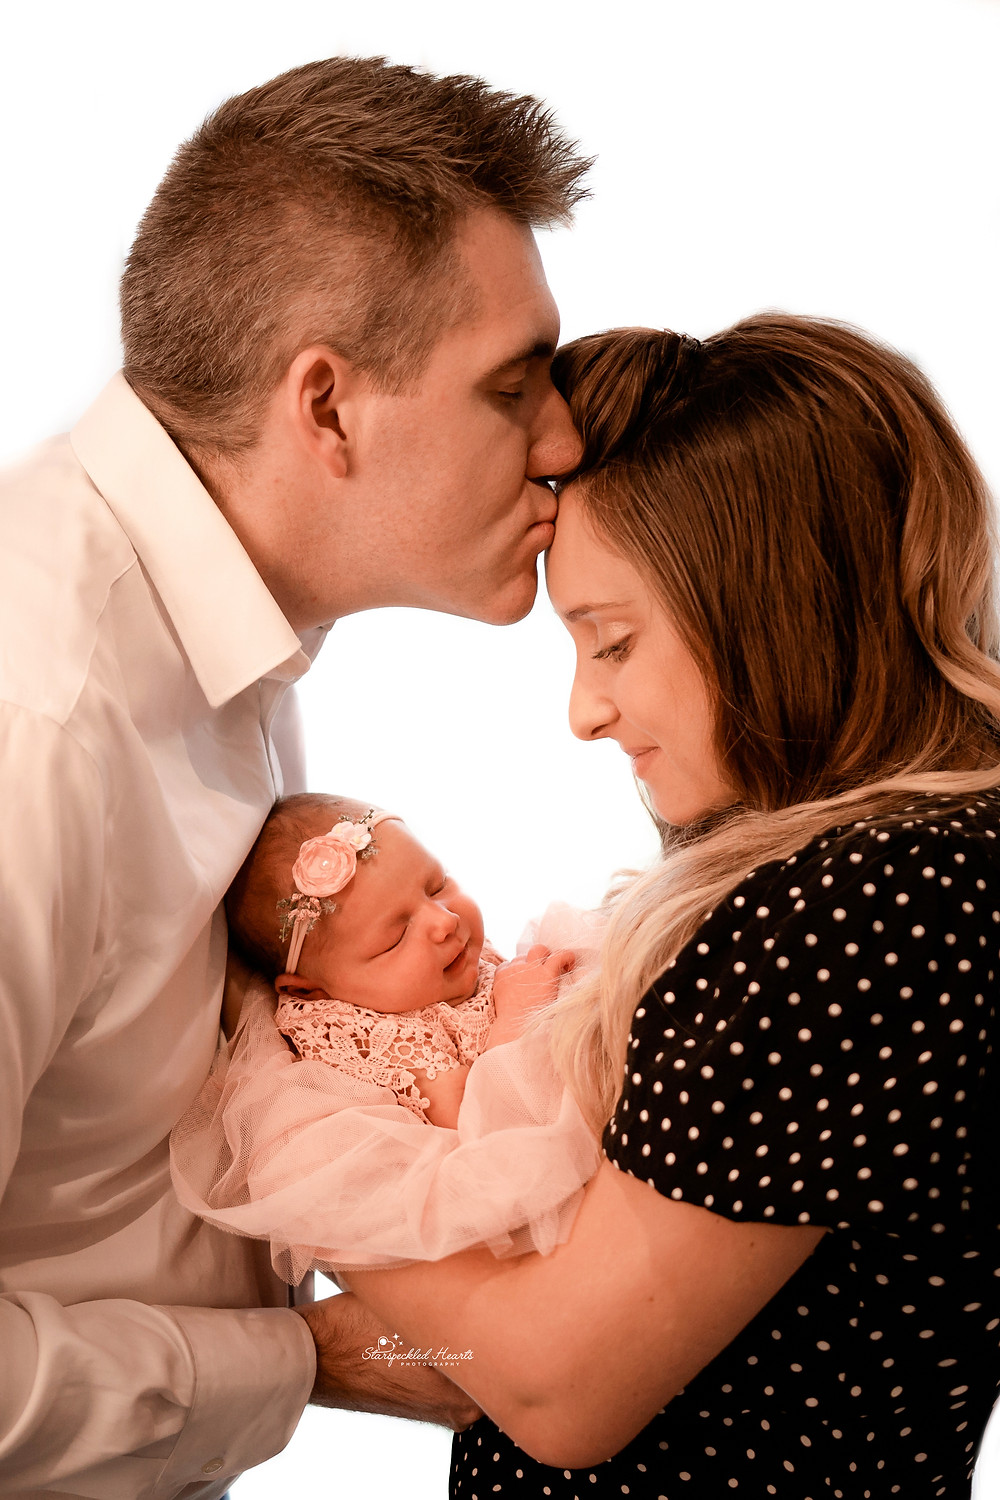 newborn held by her mum and dad looking over her